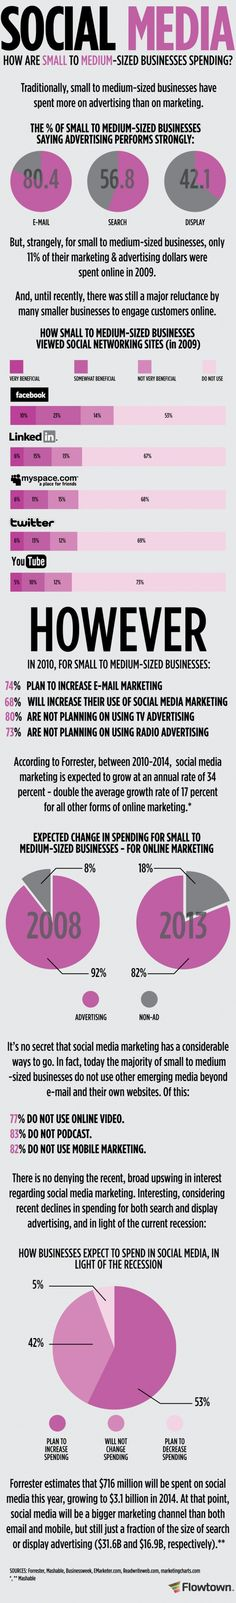 How Businesses Spend Their Social Media Dollars